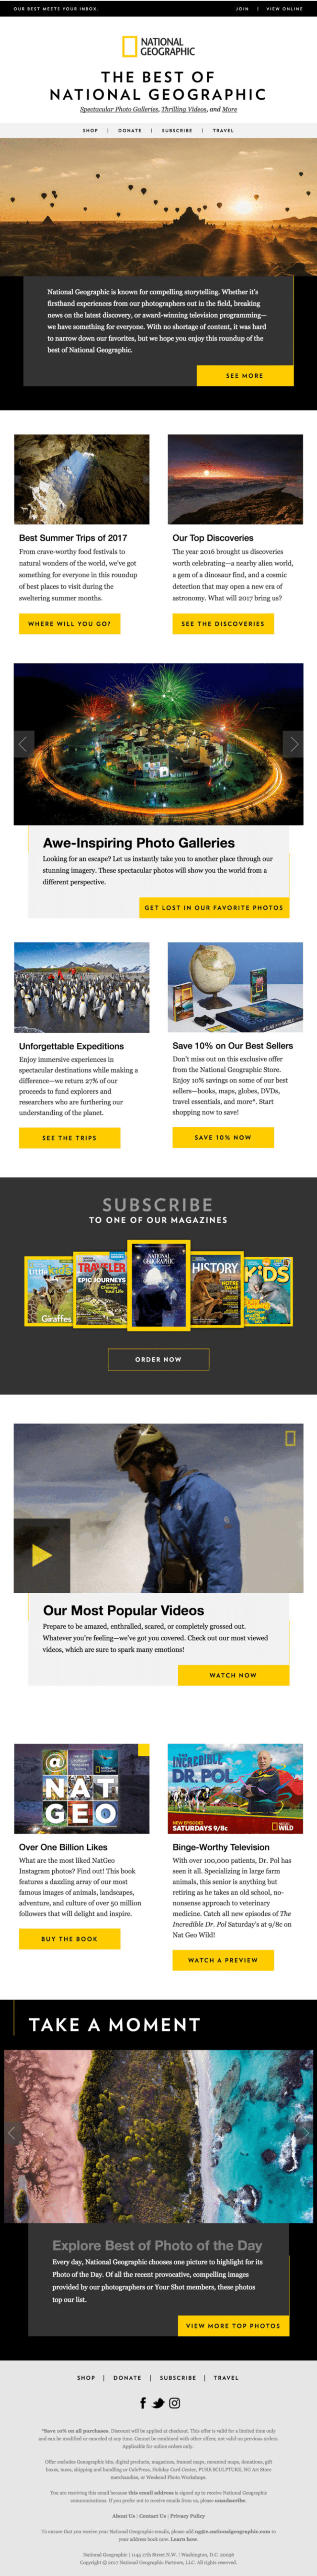 National geographic best of email